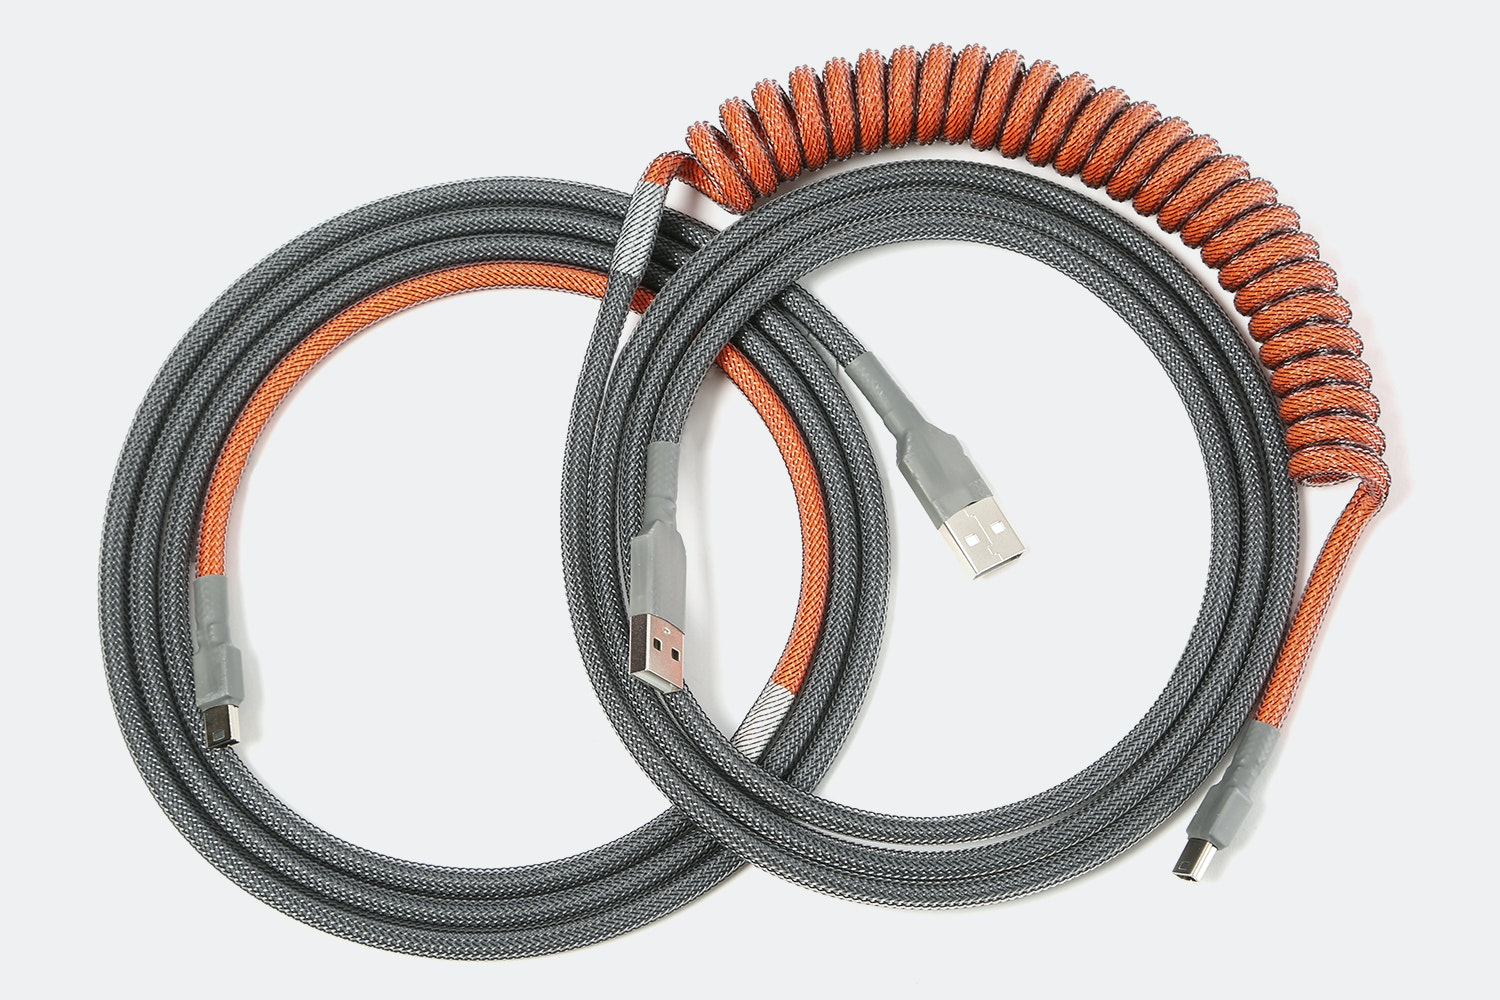 Mechcables Carbon Custom-Sleeved USB Cable